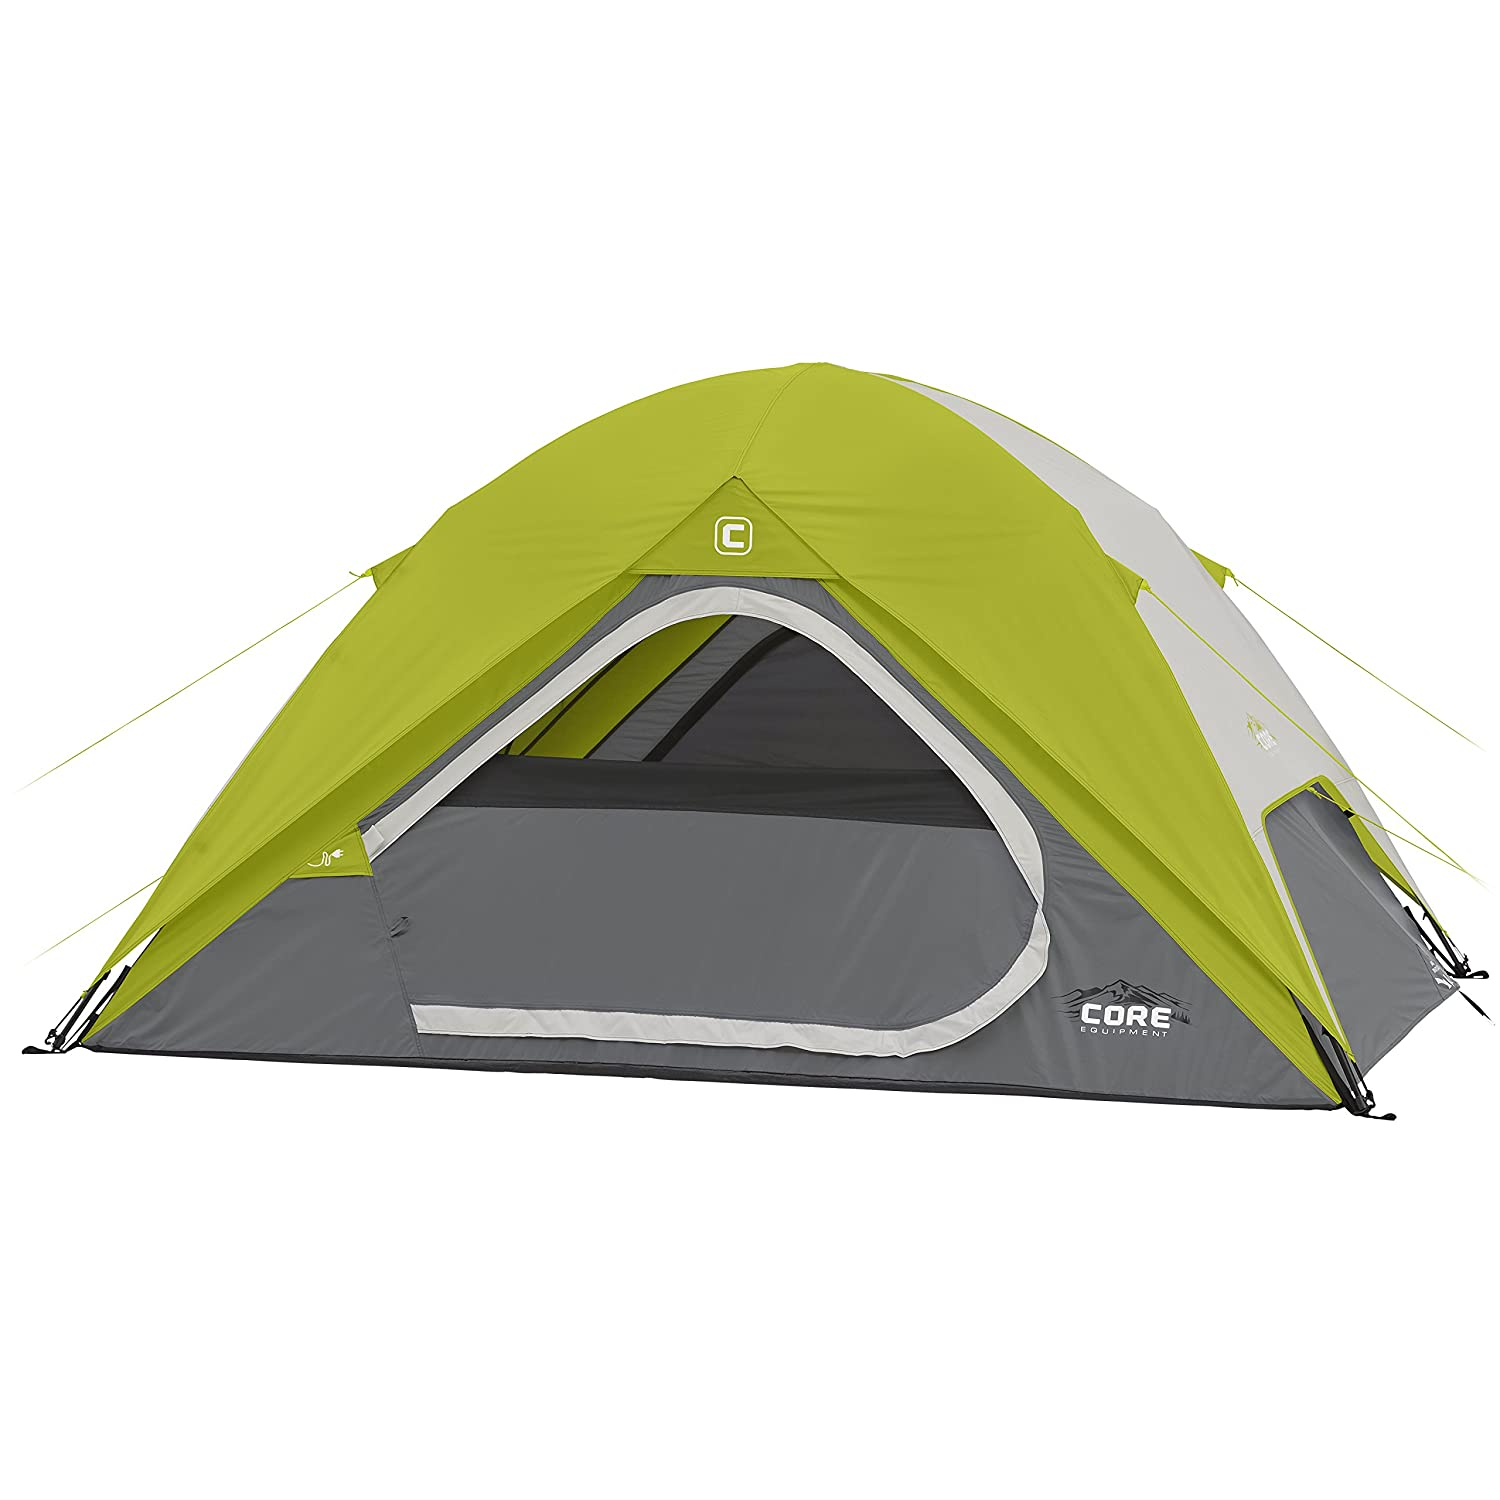 CORE Equipment 4 Person Instant Dome Tent, Instant tents